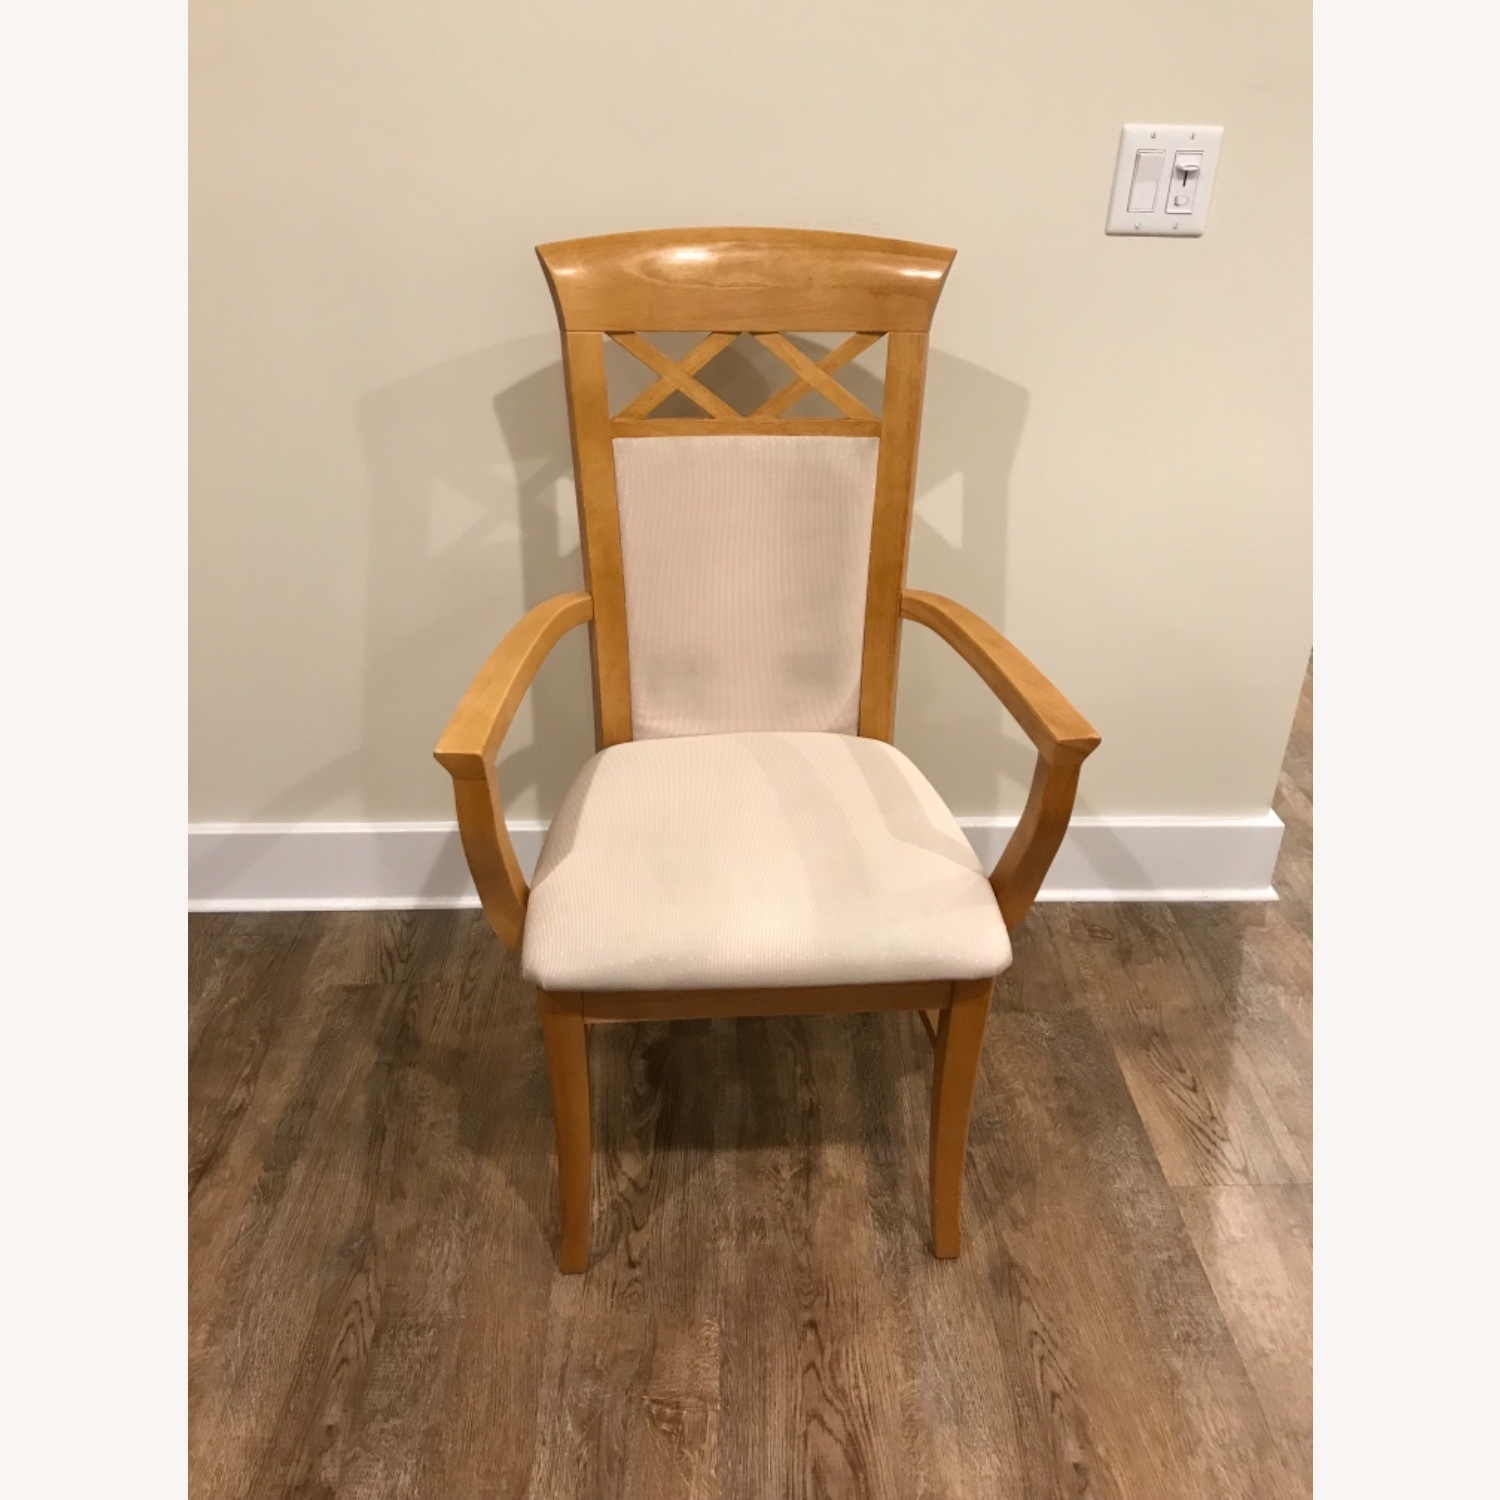 Levitz Furniture Dining Chairs - image-2